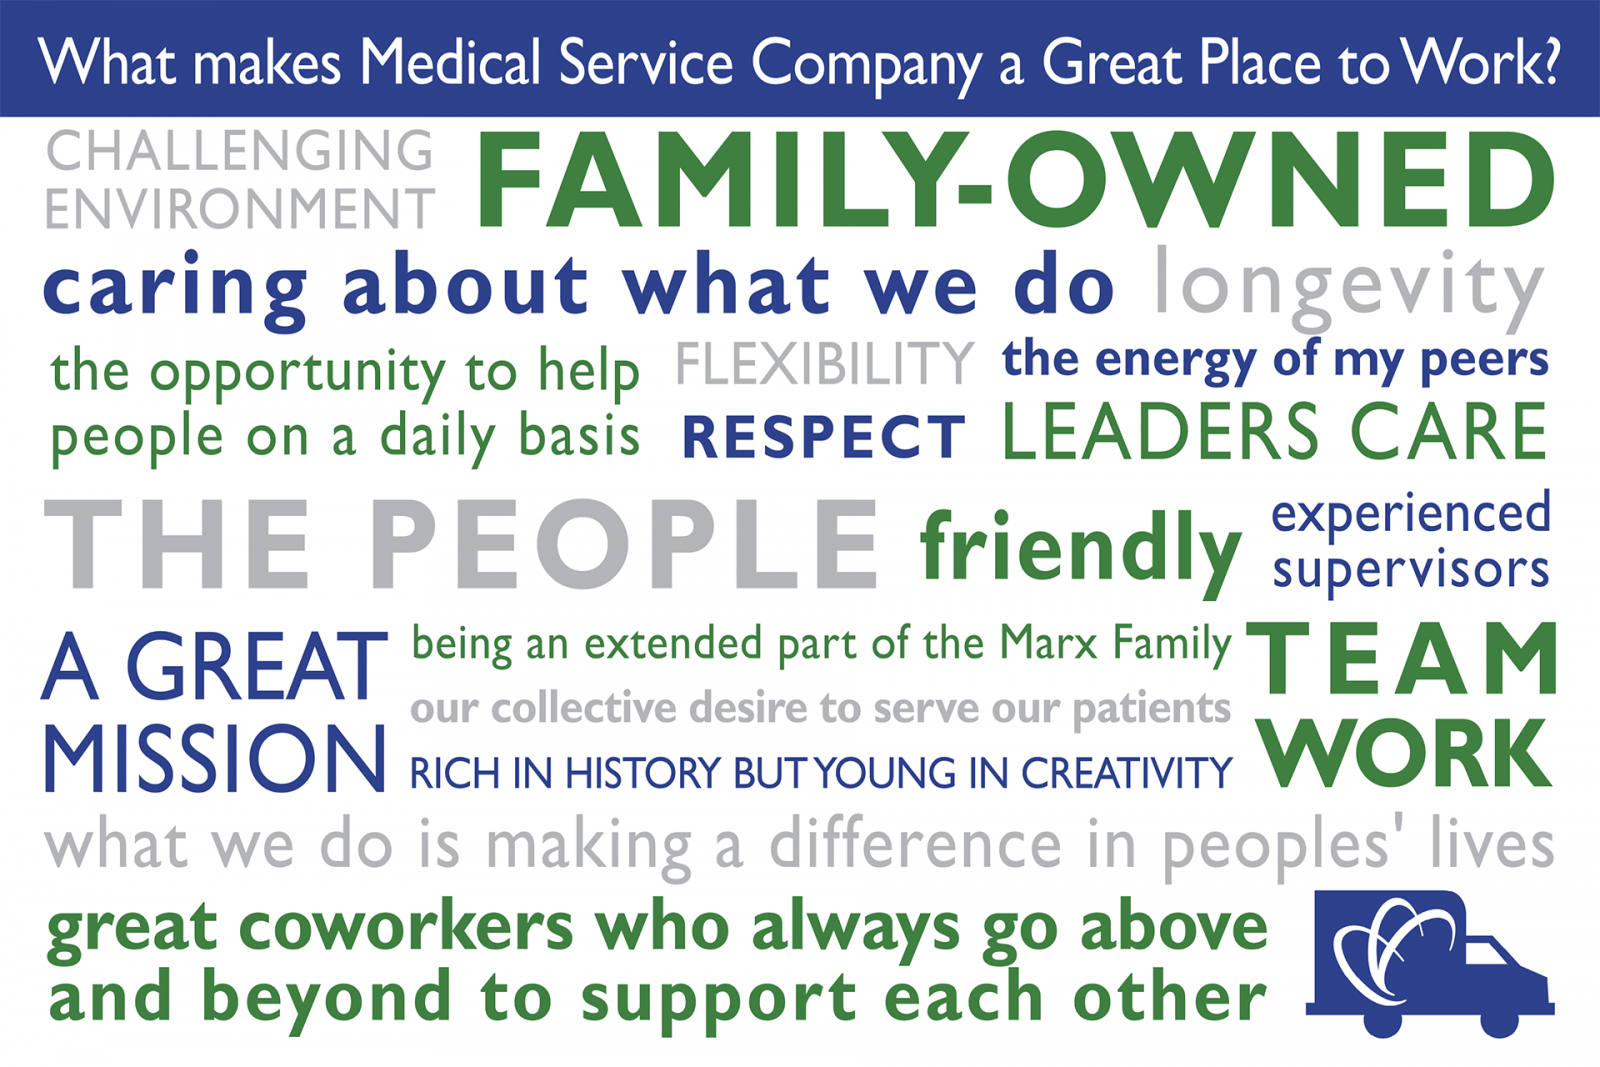 testimonials of MSC employees and why they think MSC is a great company to work at